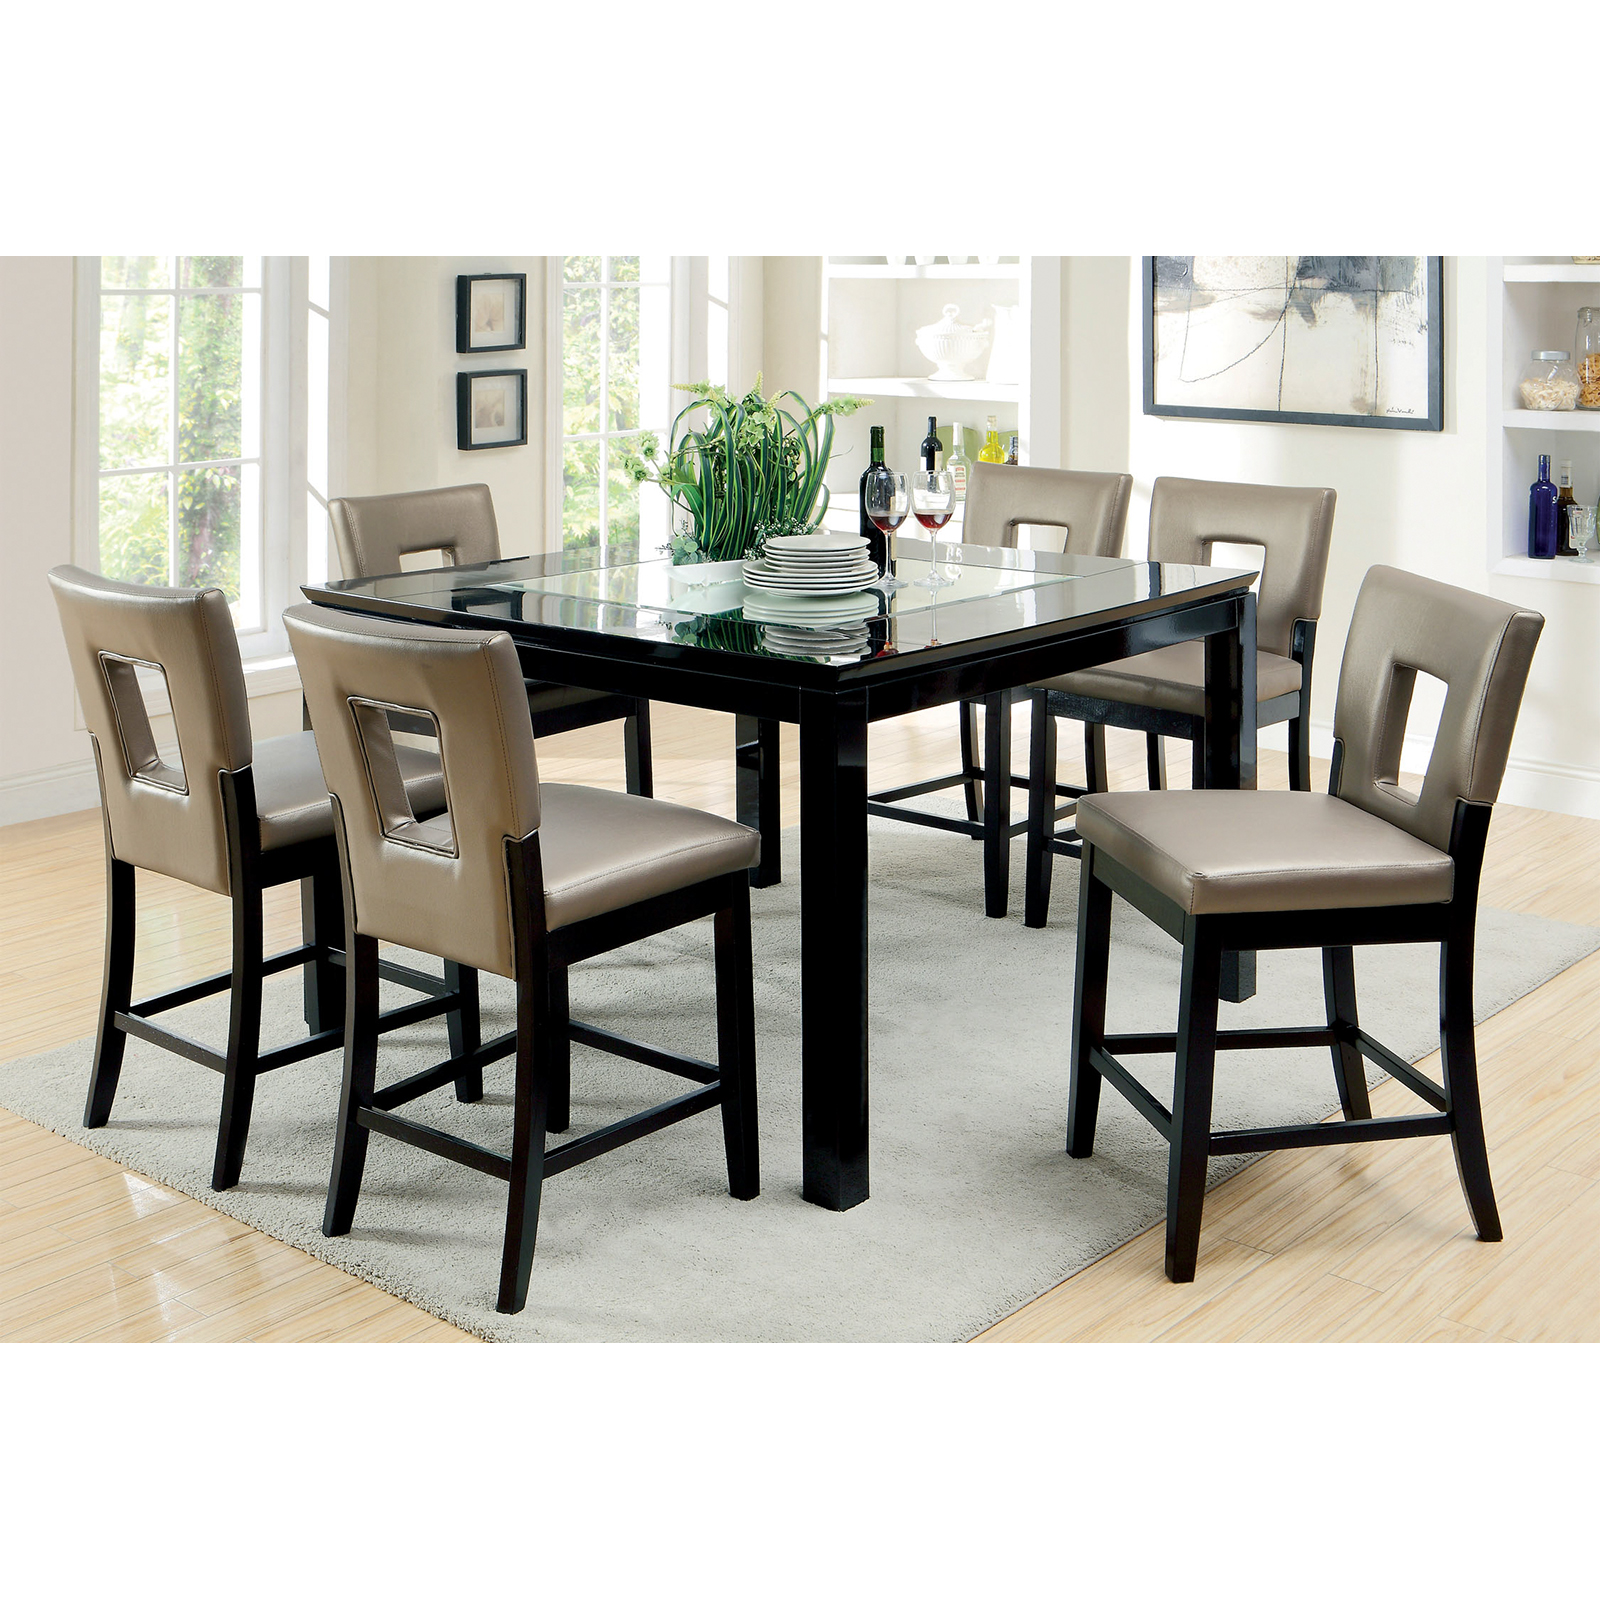 Furniture of America Vanderbilte 7 Piece Wood with Glass Inlay Dining Set    Black   Hayneedle. Furniture of America Vanderbilte 7 Piece Wood with Glass Inlay